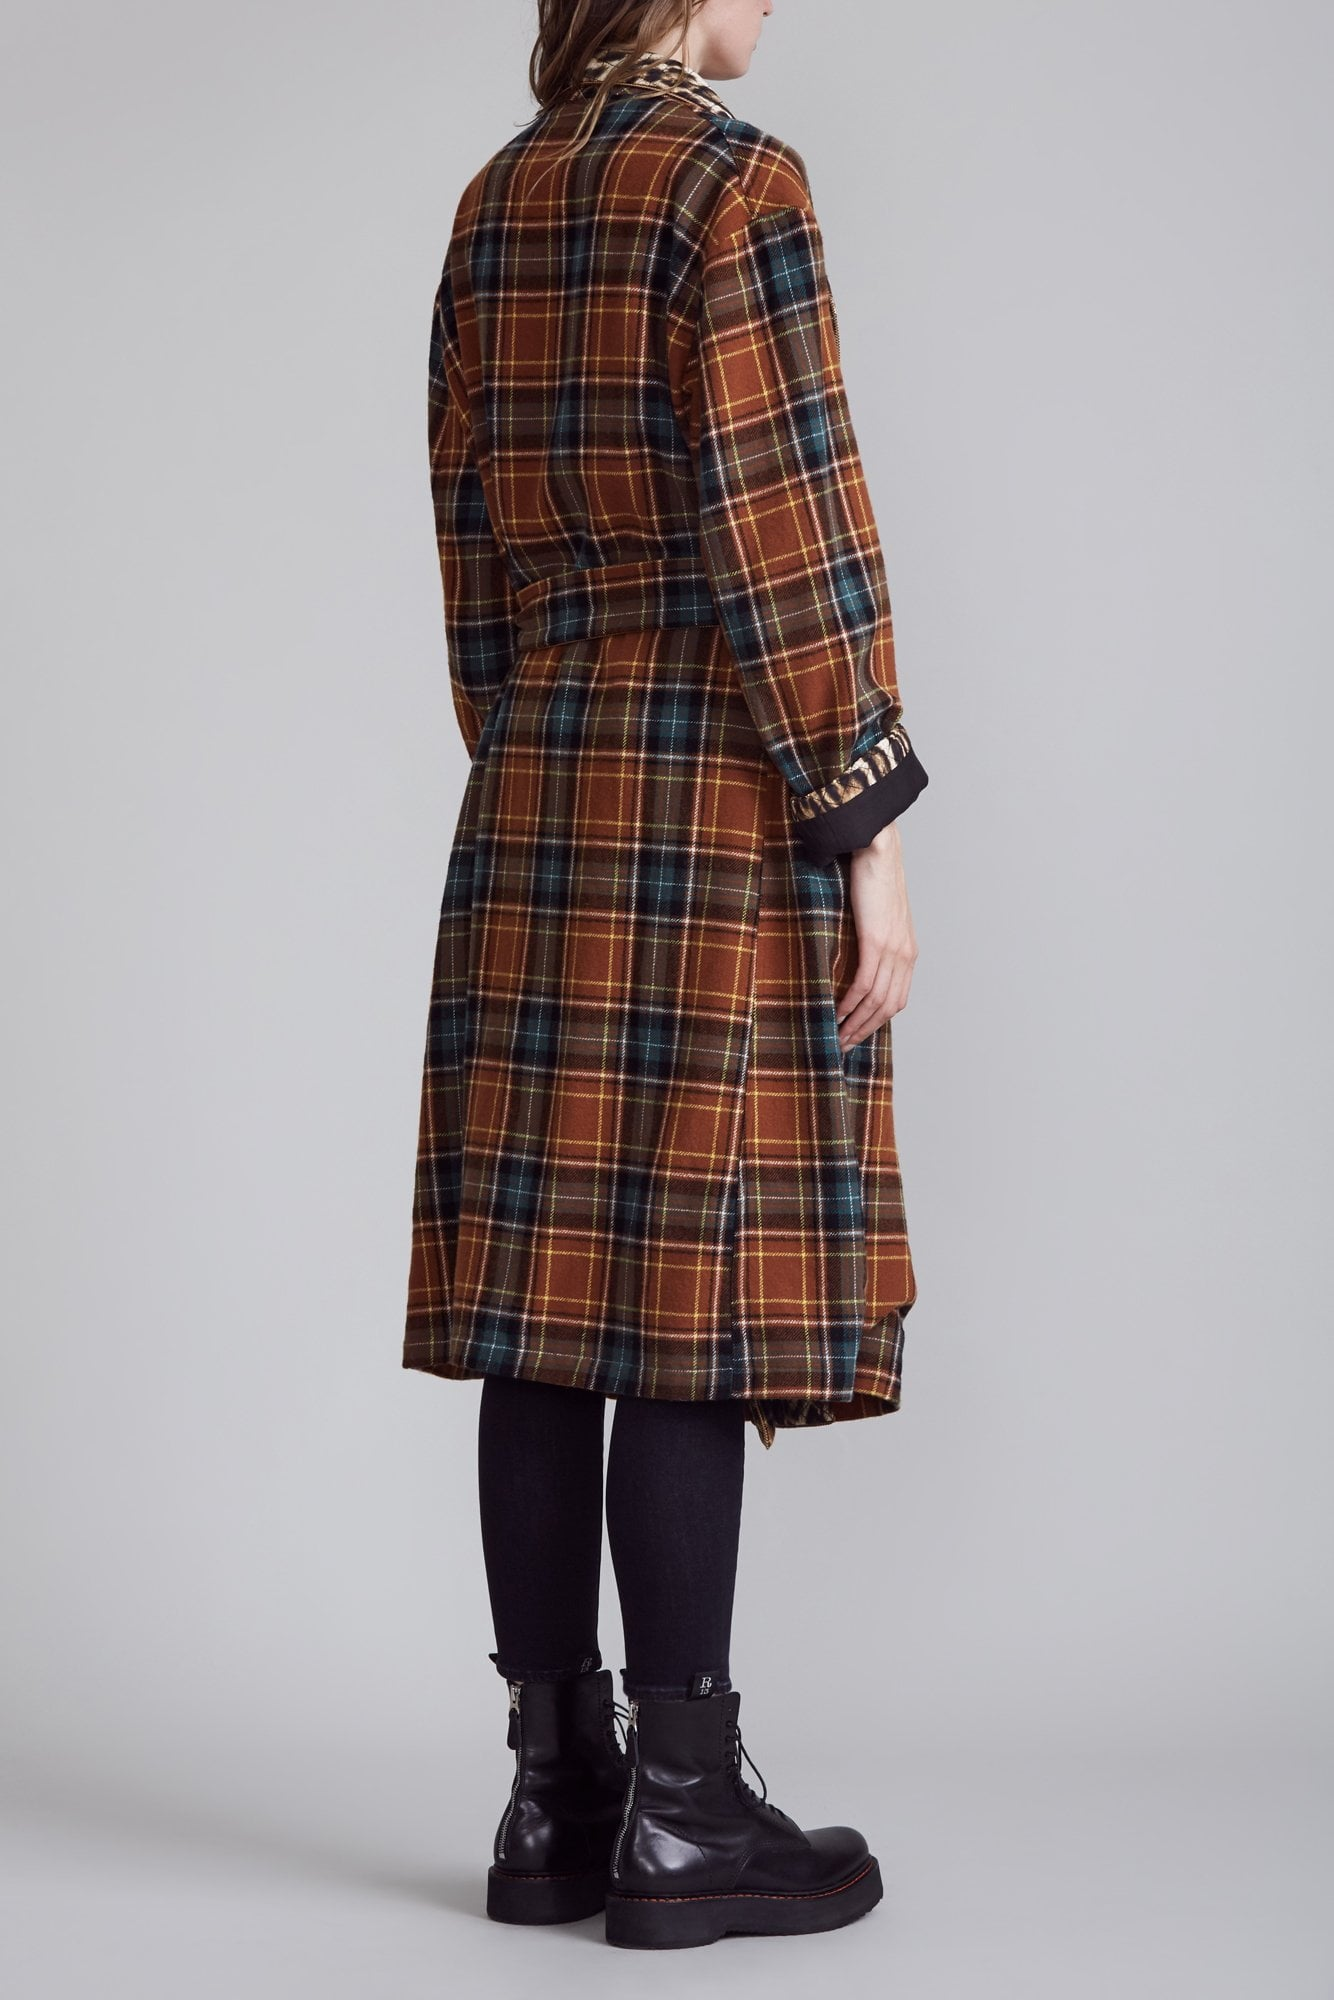 Winter Robe - Brown Plaid with Leopard